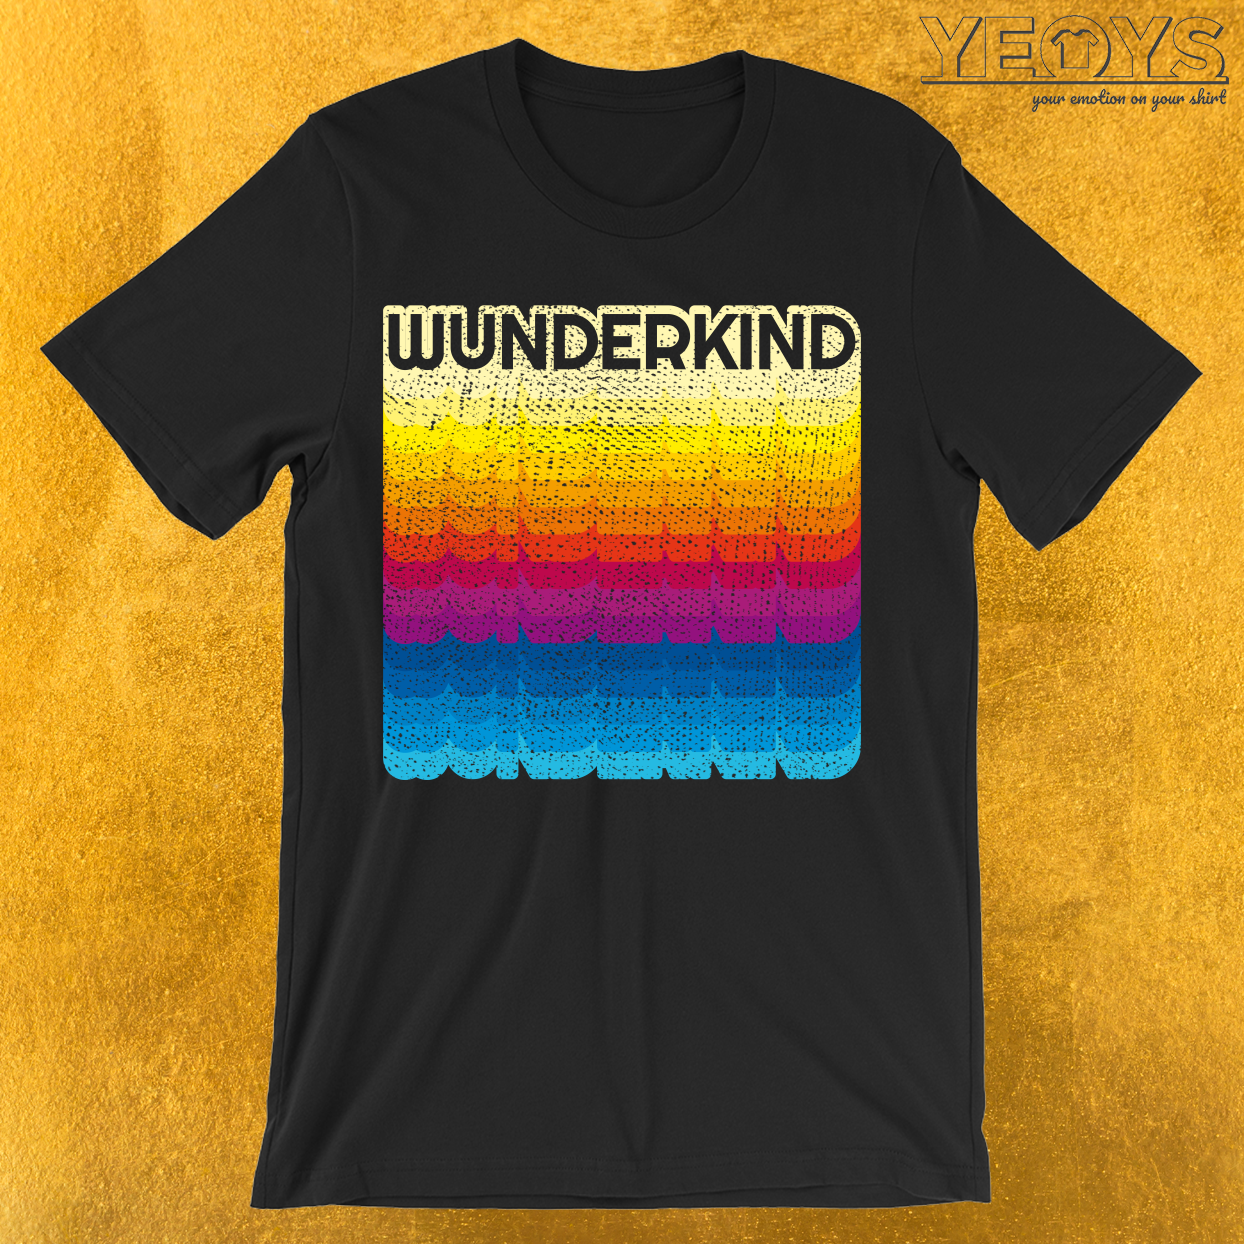 Wunderkind T-Shirt